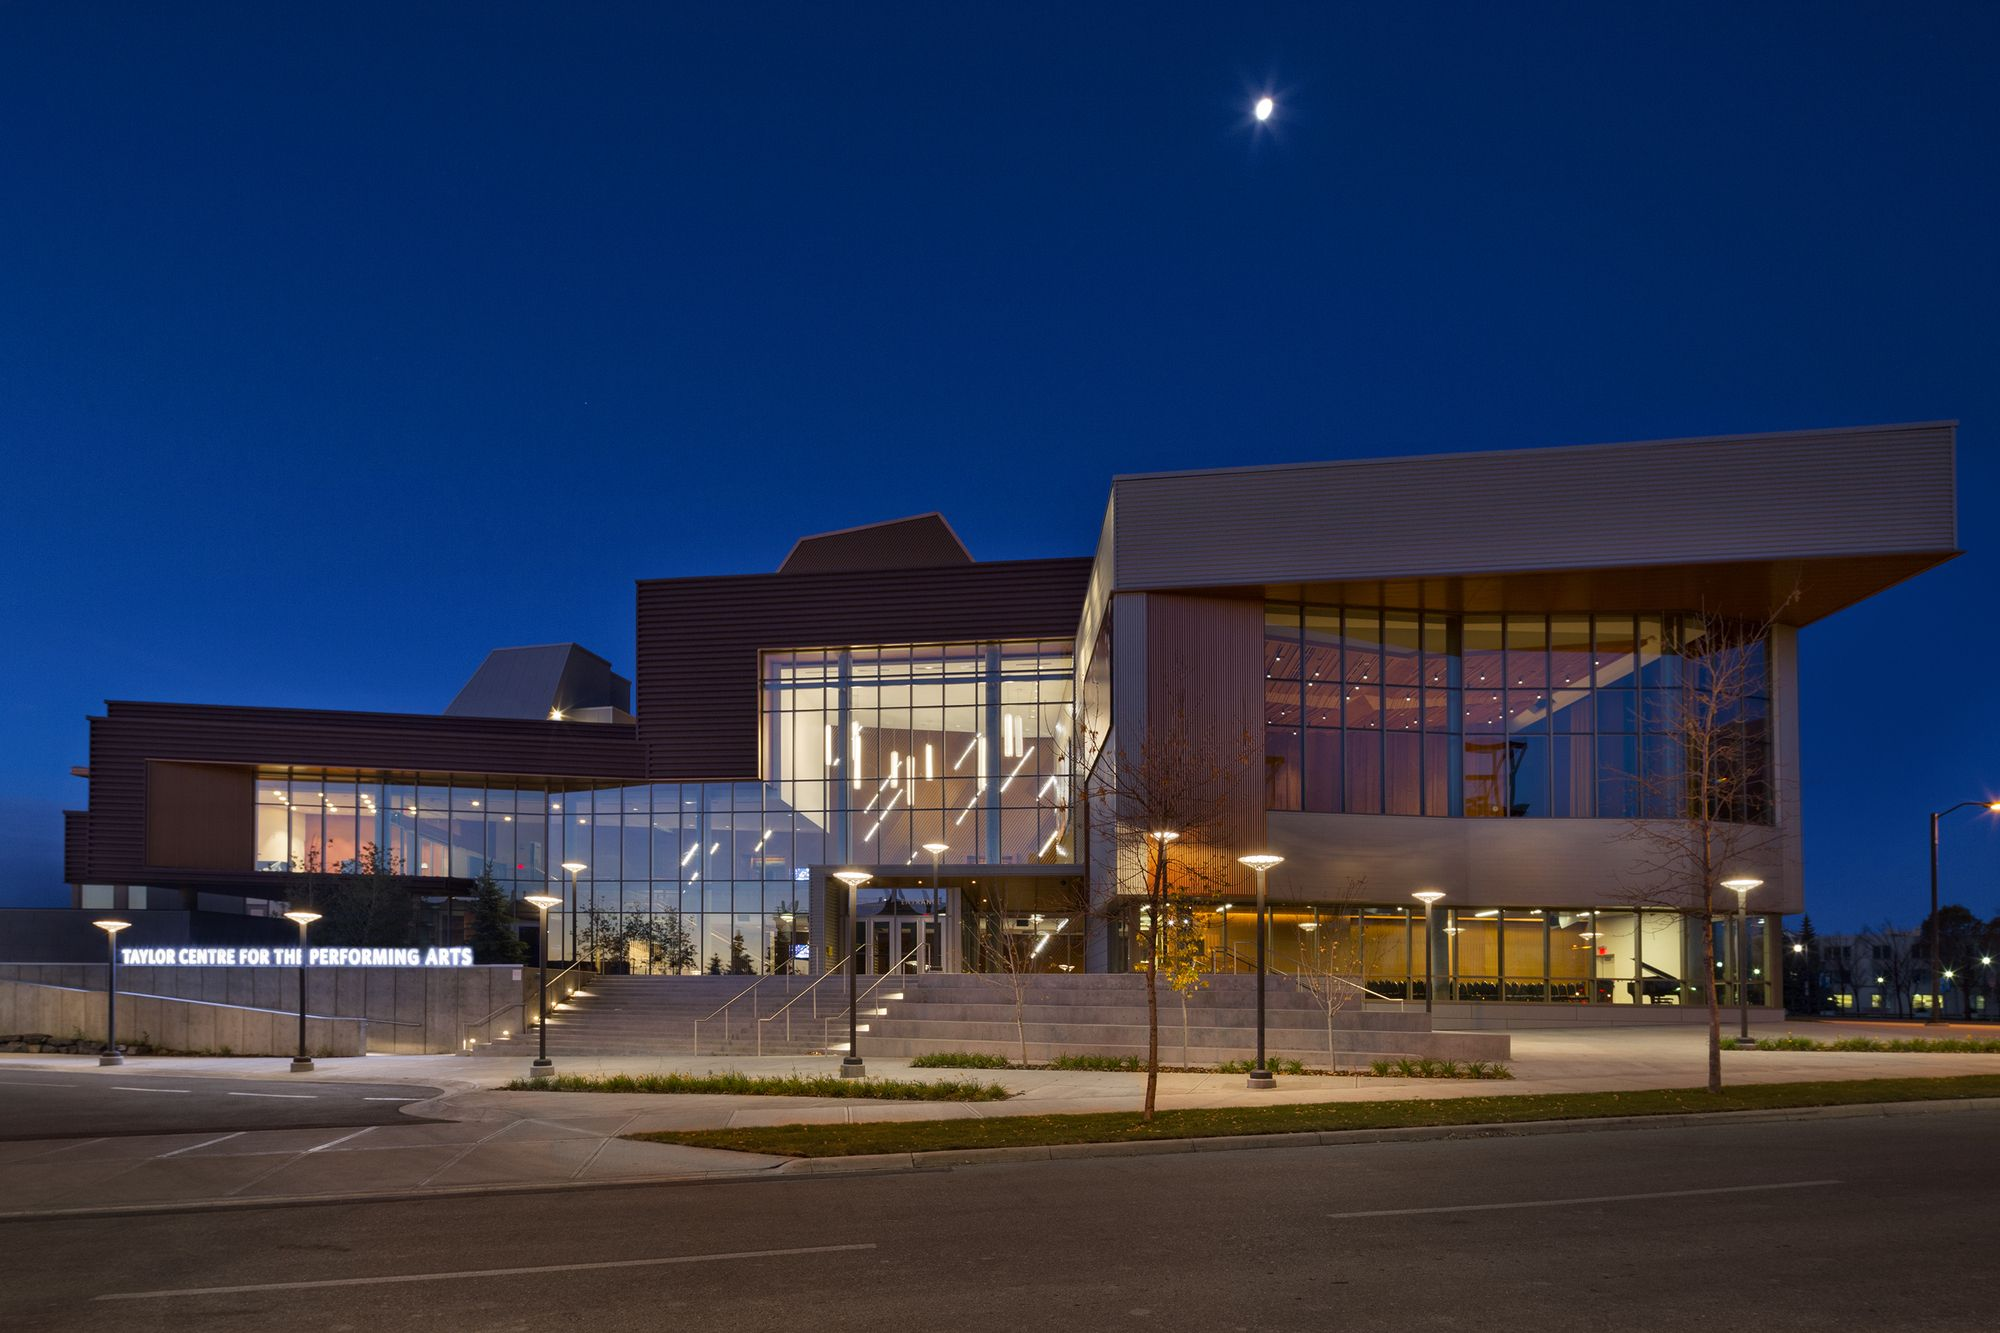 Mount Royal University Taylor Centre For The Performing Arts